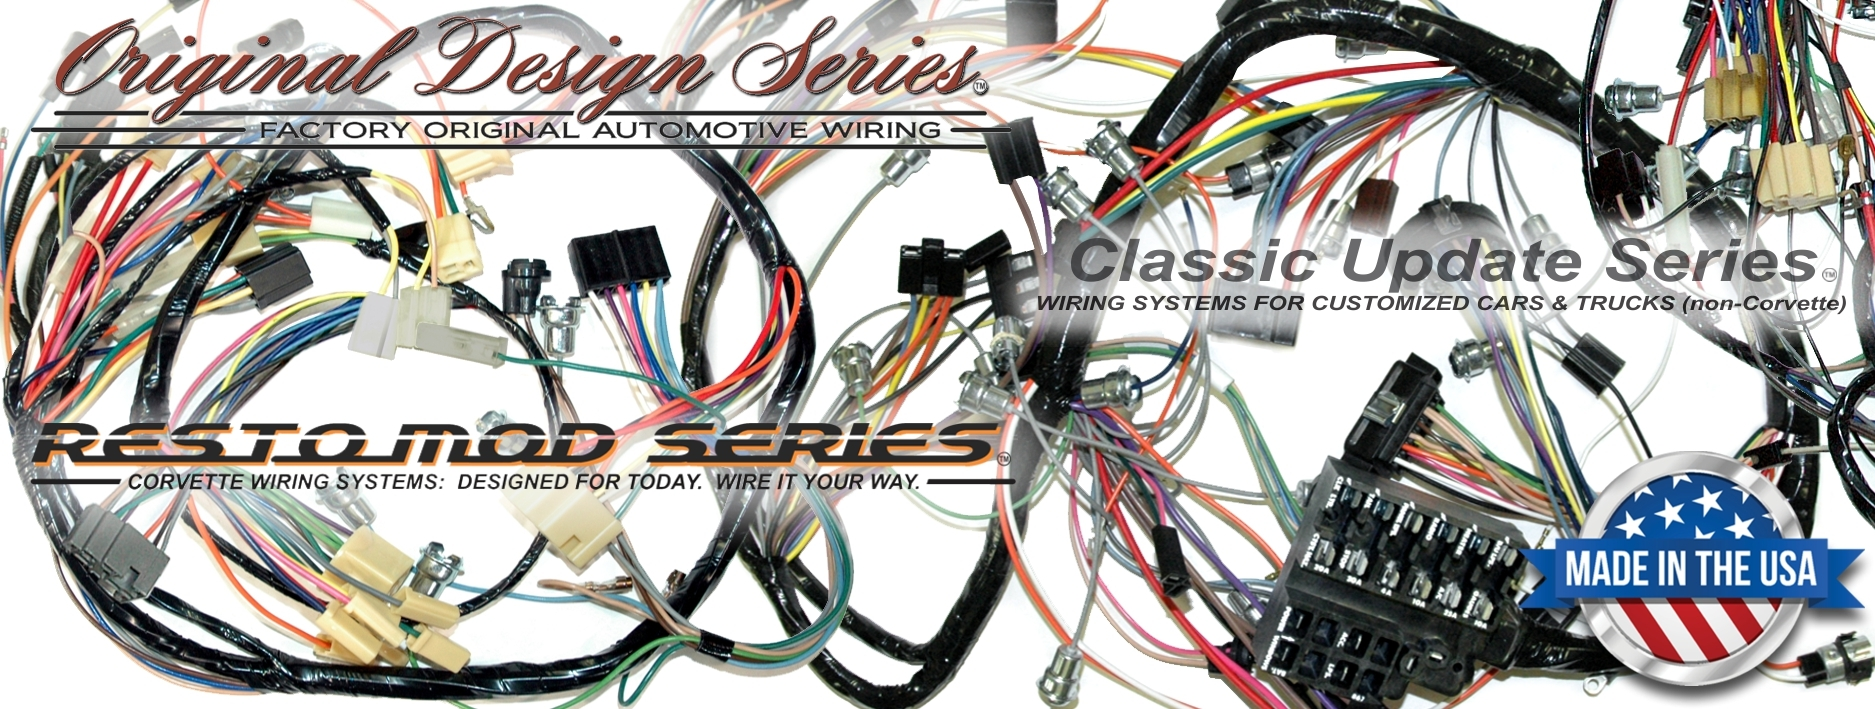 new header wiring_harnesses exact oem reproduction wiring harnesses and restomod wiring auto wiring harness kits at bakdesigns.co